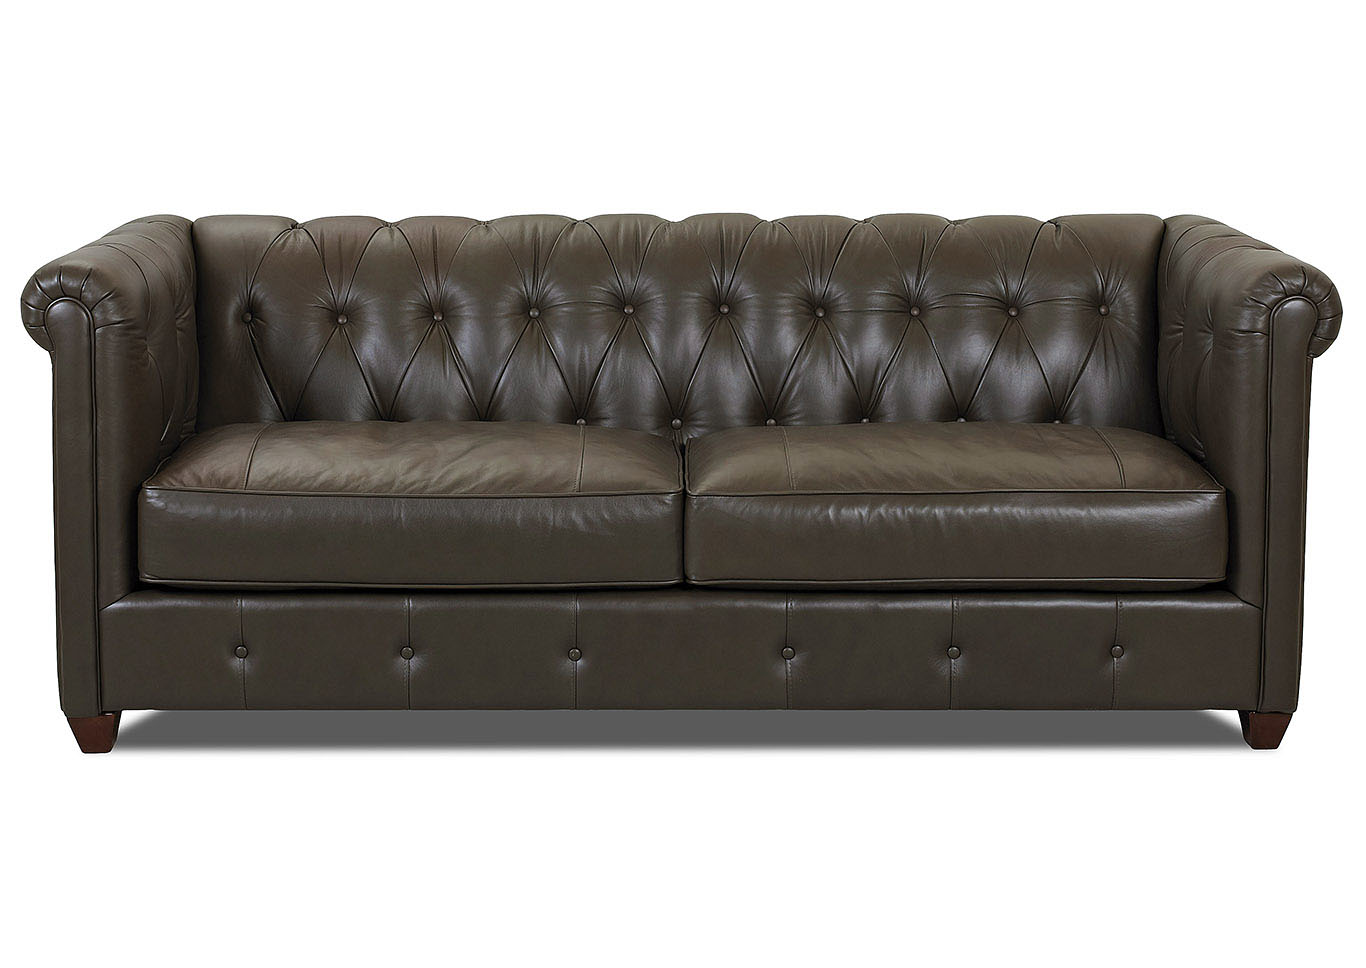 Beech Mountain Hesterfield Olive Leather Stationary Sofa,Klaussner Home  Furnishings